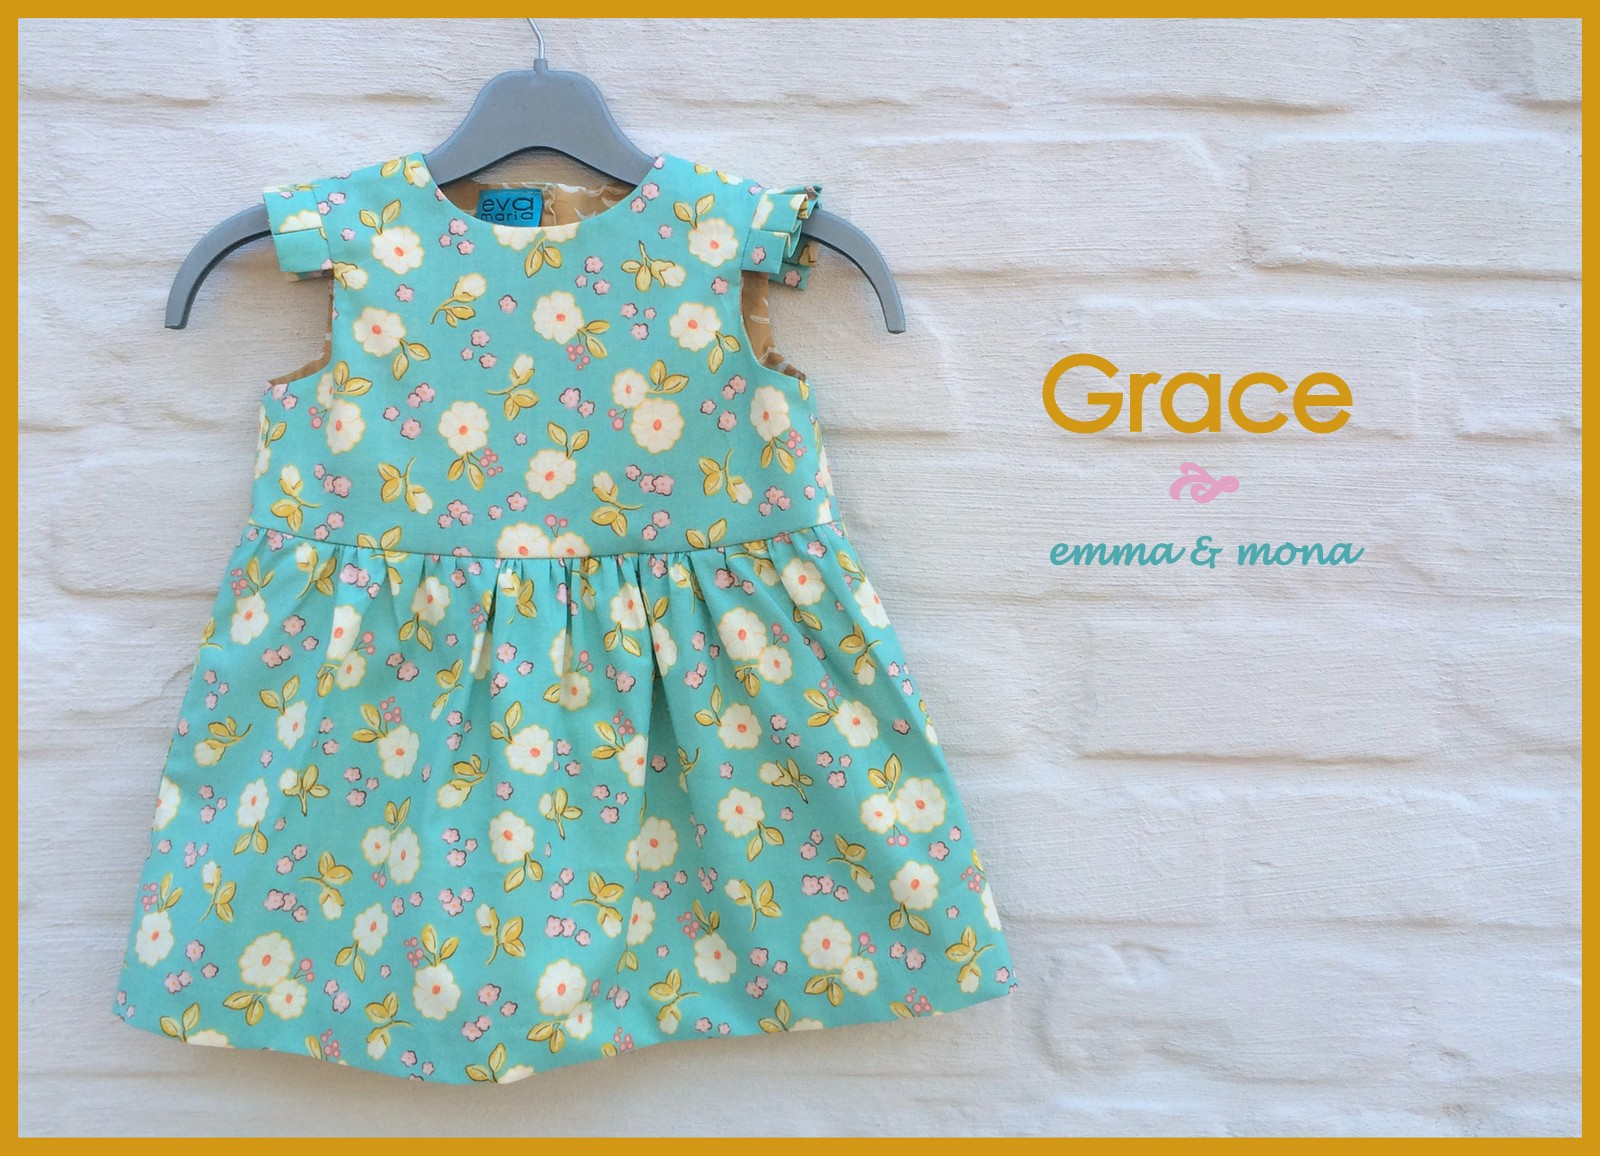 grace babydress